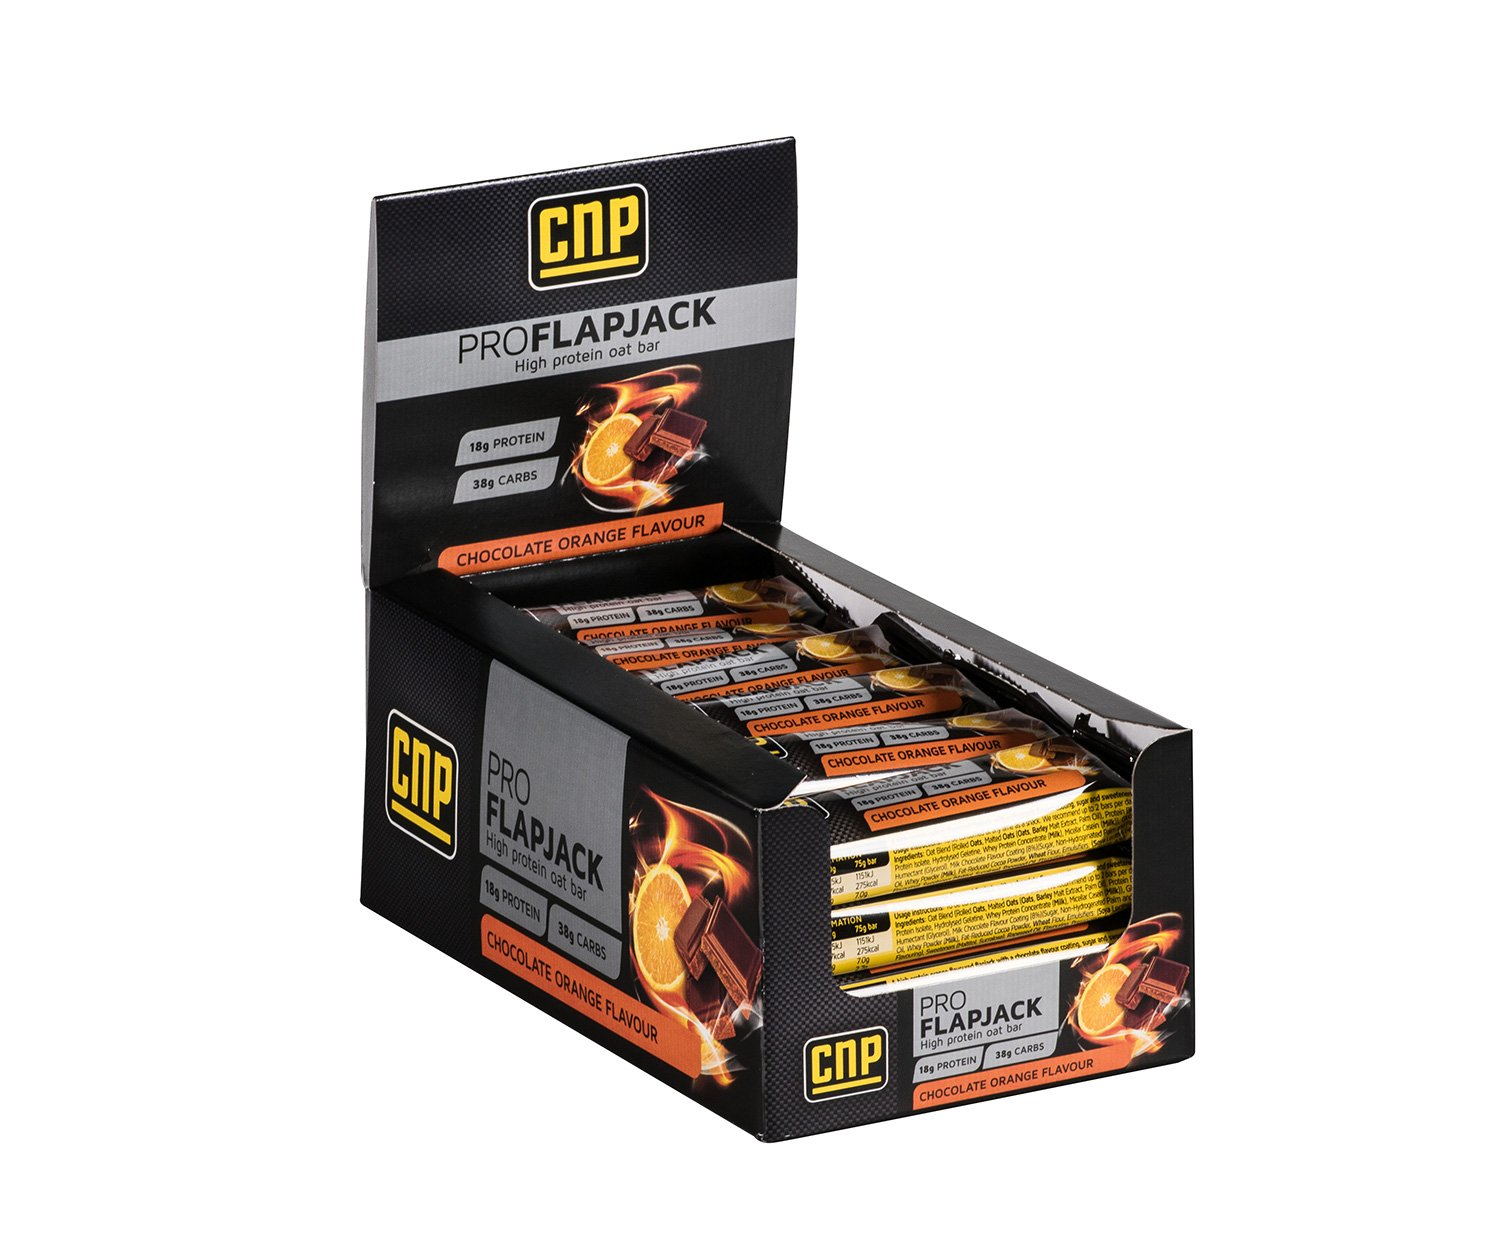 CNP Pro Flapjack - Chocolate Orange High Protein Flapjack Bars – 24 x 75g Protein Oat Bars product image